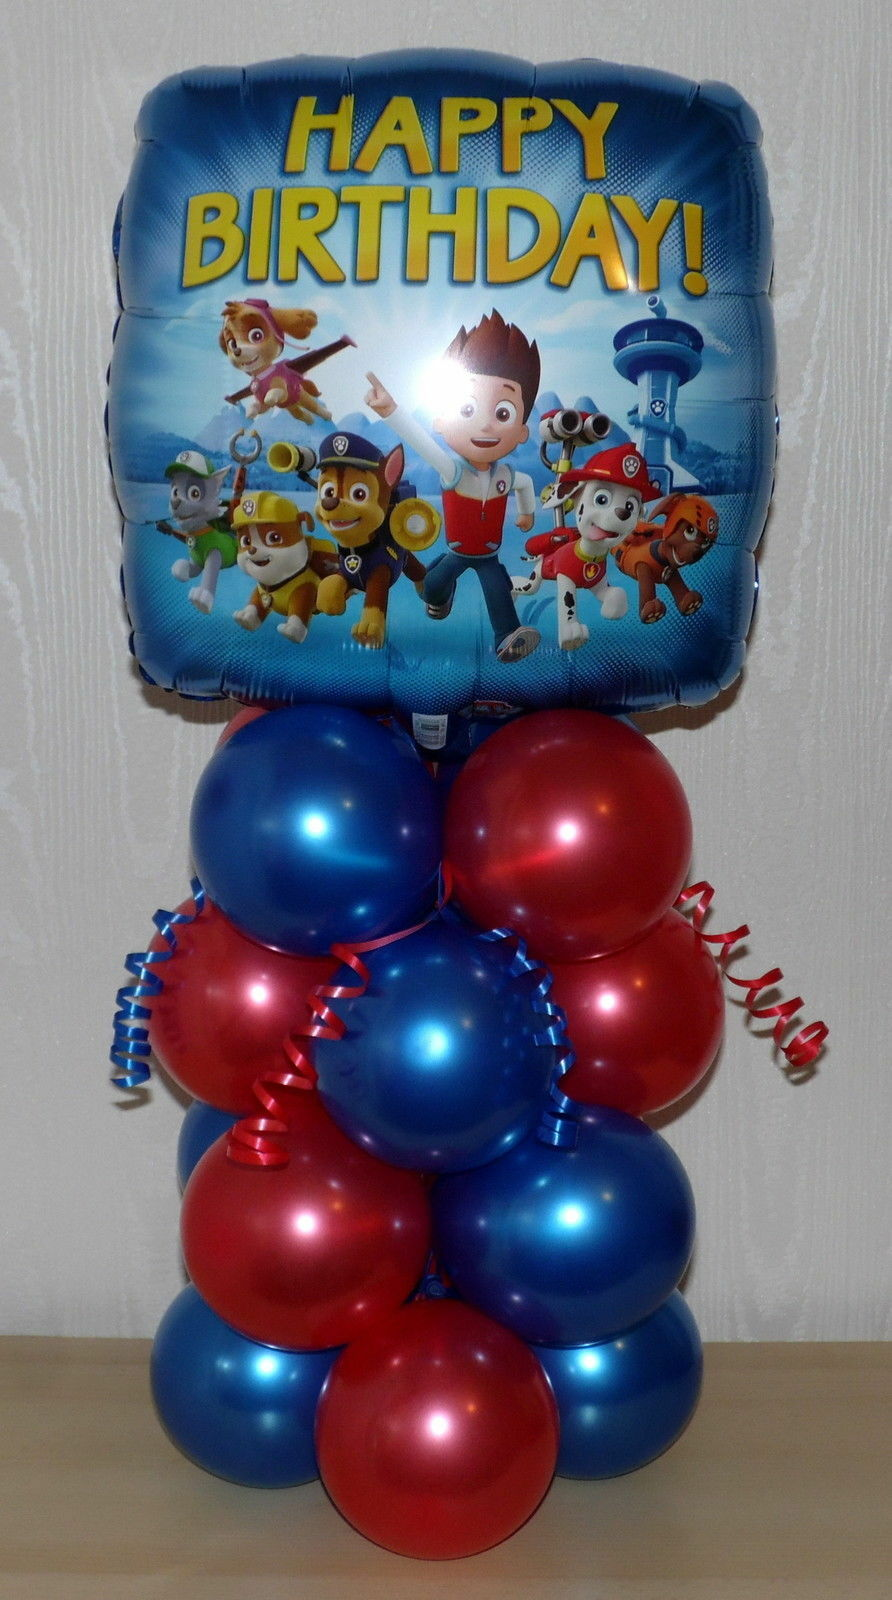 PAW PATROL NICKELODEON FOIL BALLOON DISPLAY TABLE CENTREPIECE DECORATION